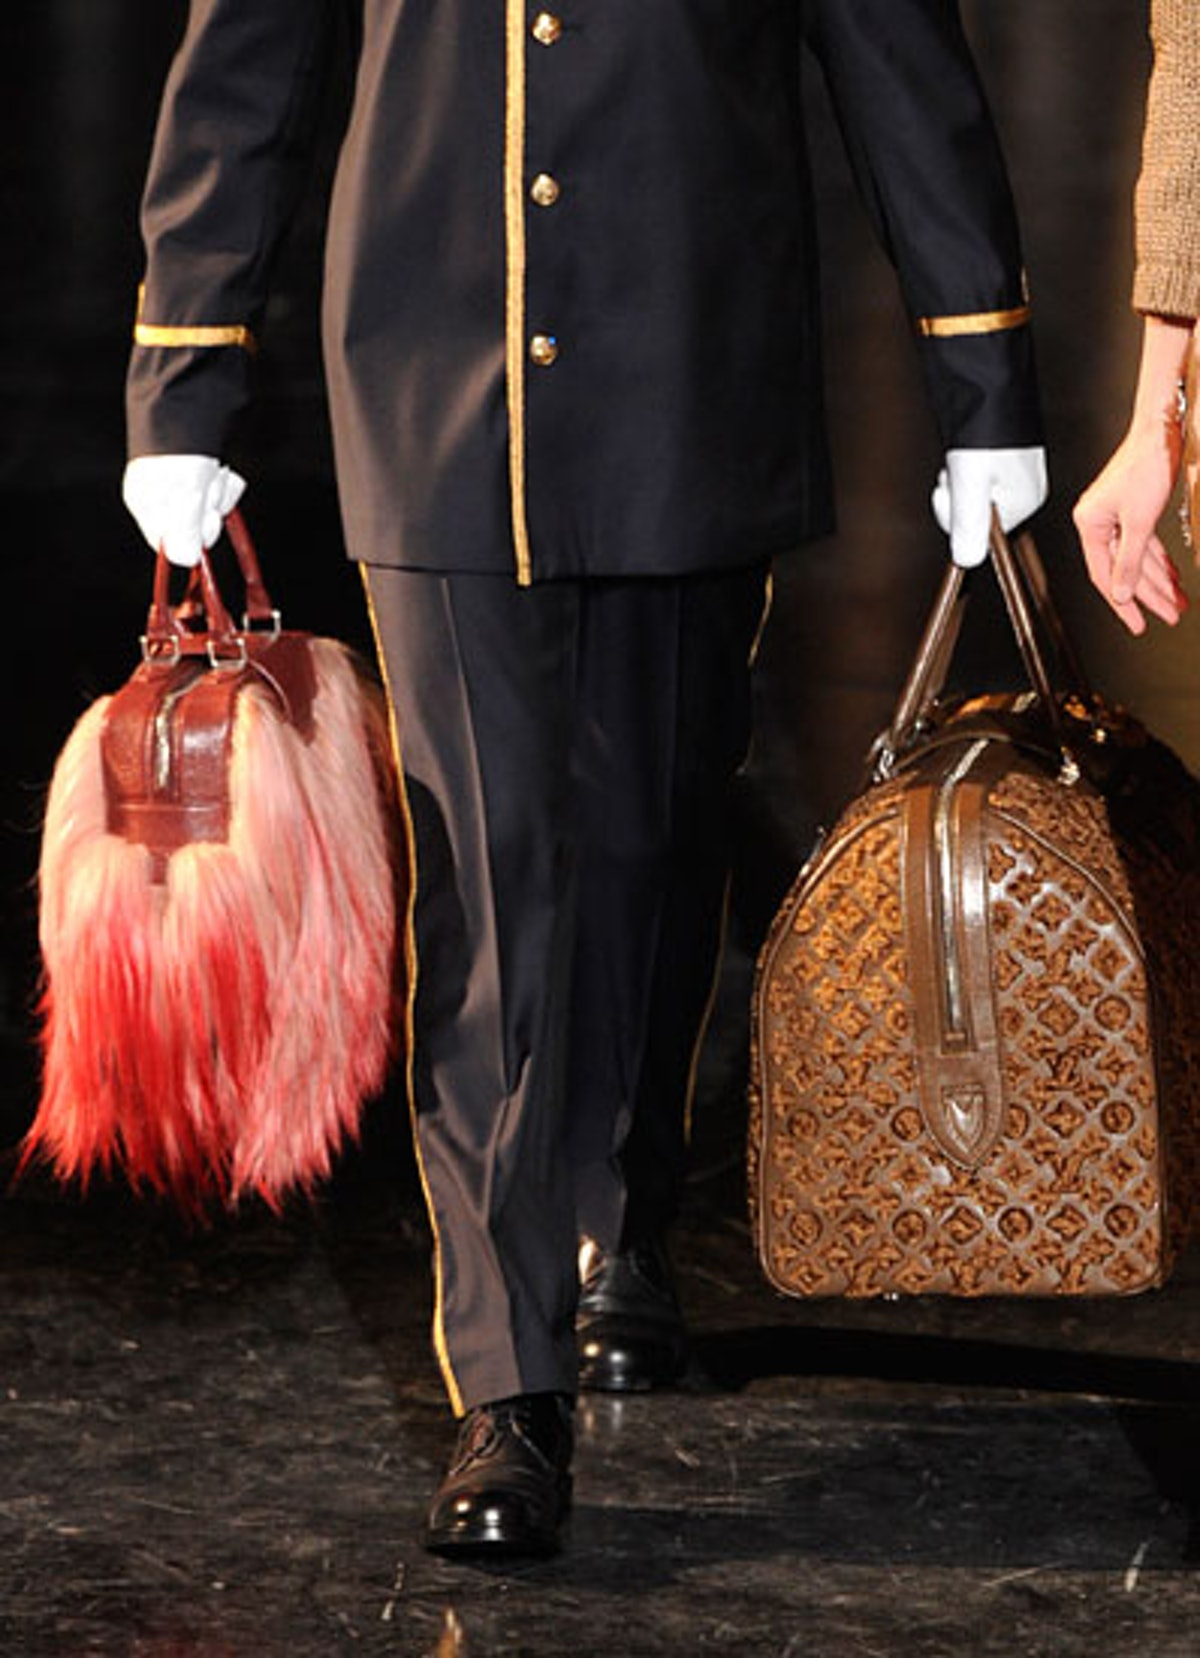 acss-fall-2012-accessories-roundup-09-v.jpg